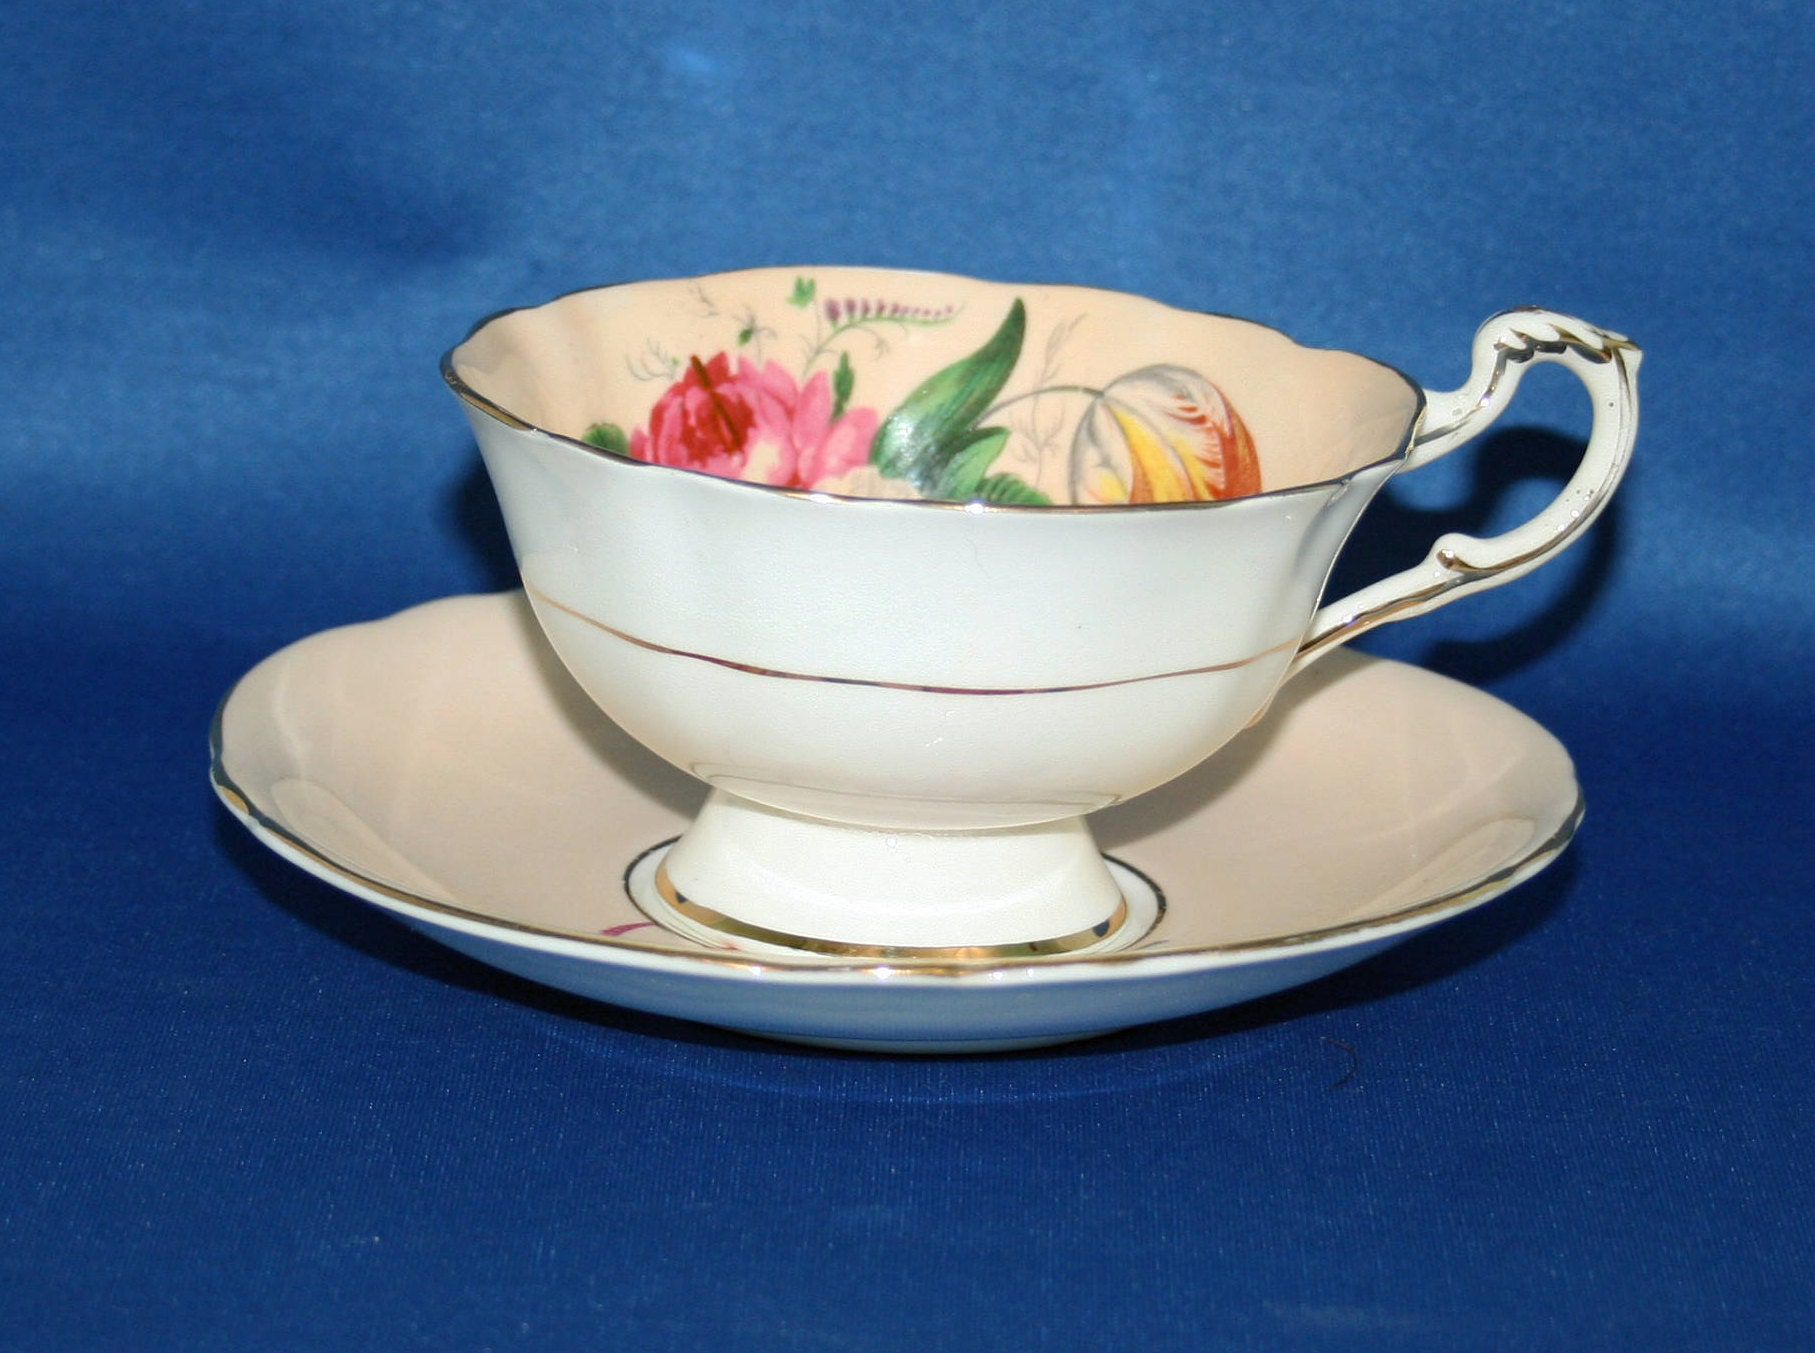 Vintage Paragon Cream Floral Teacup and Saucer by Royal Appointment for The Queen Elizabeth /& H.M Queen Mary English Tea Cup Garden Party